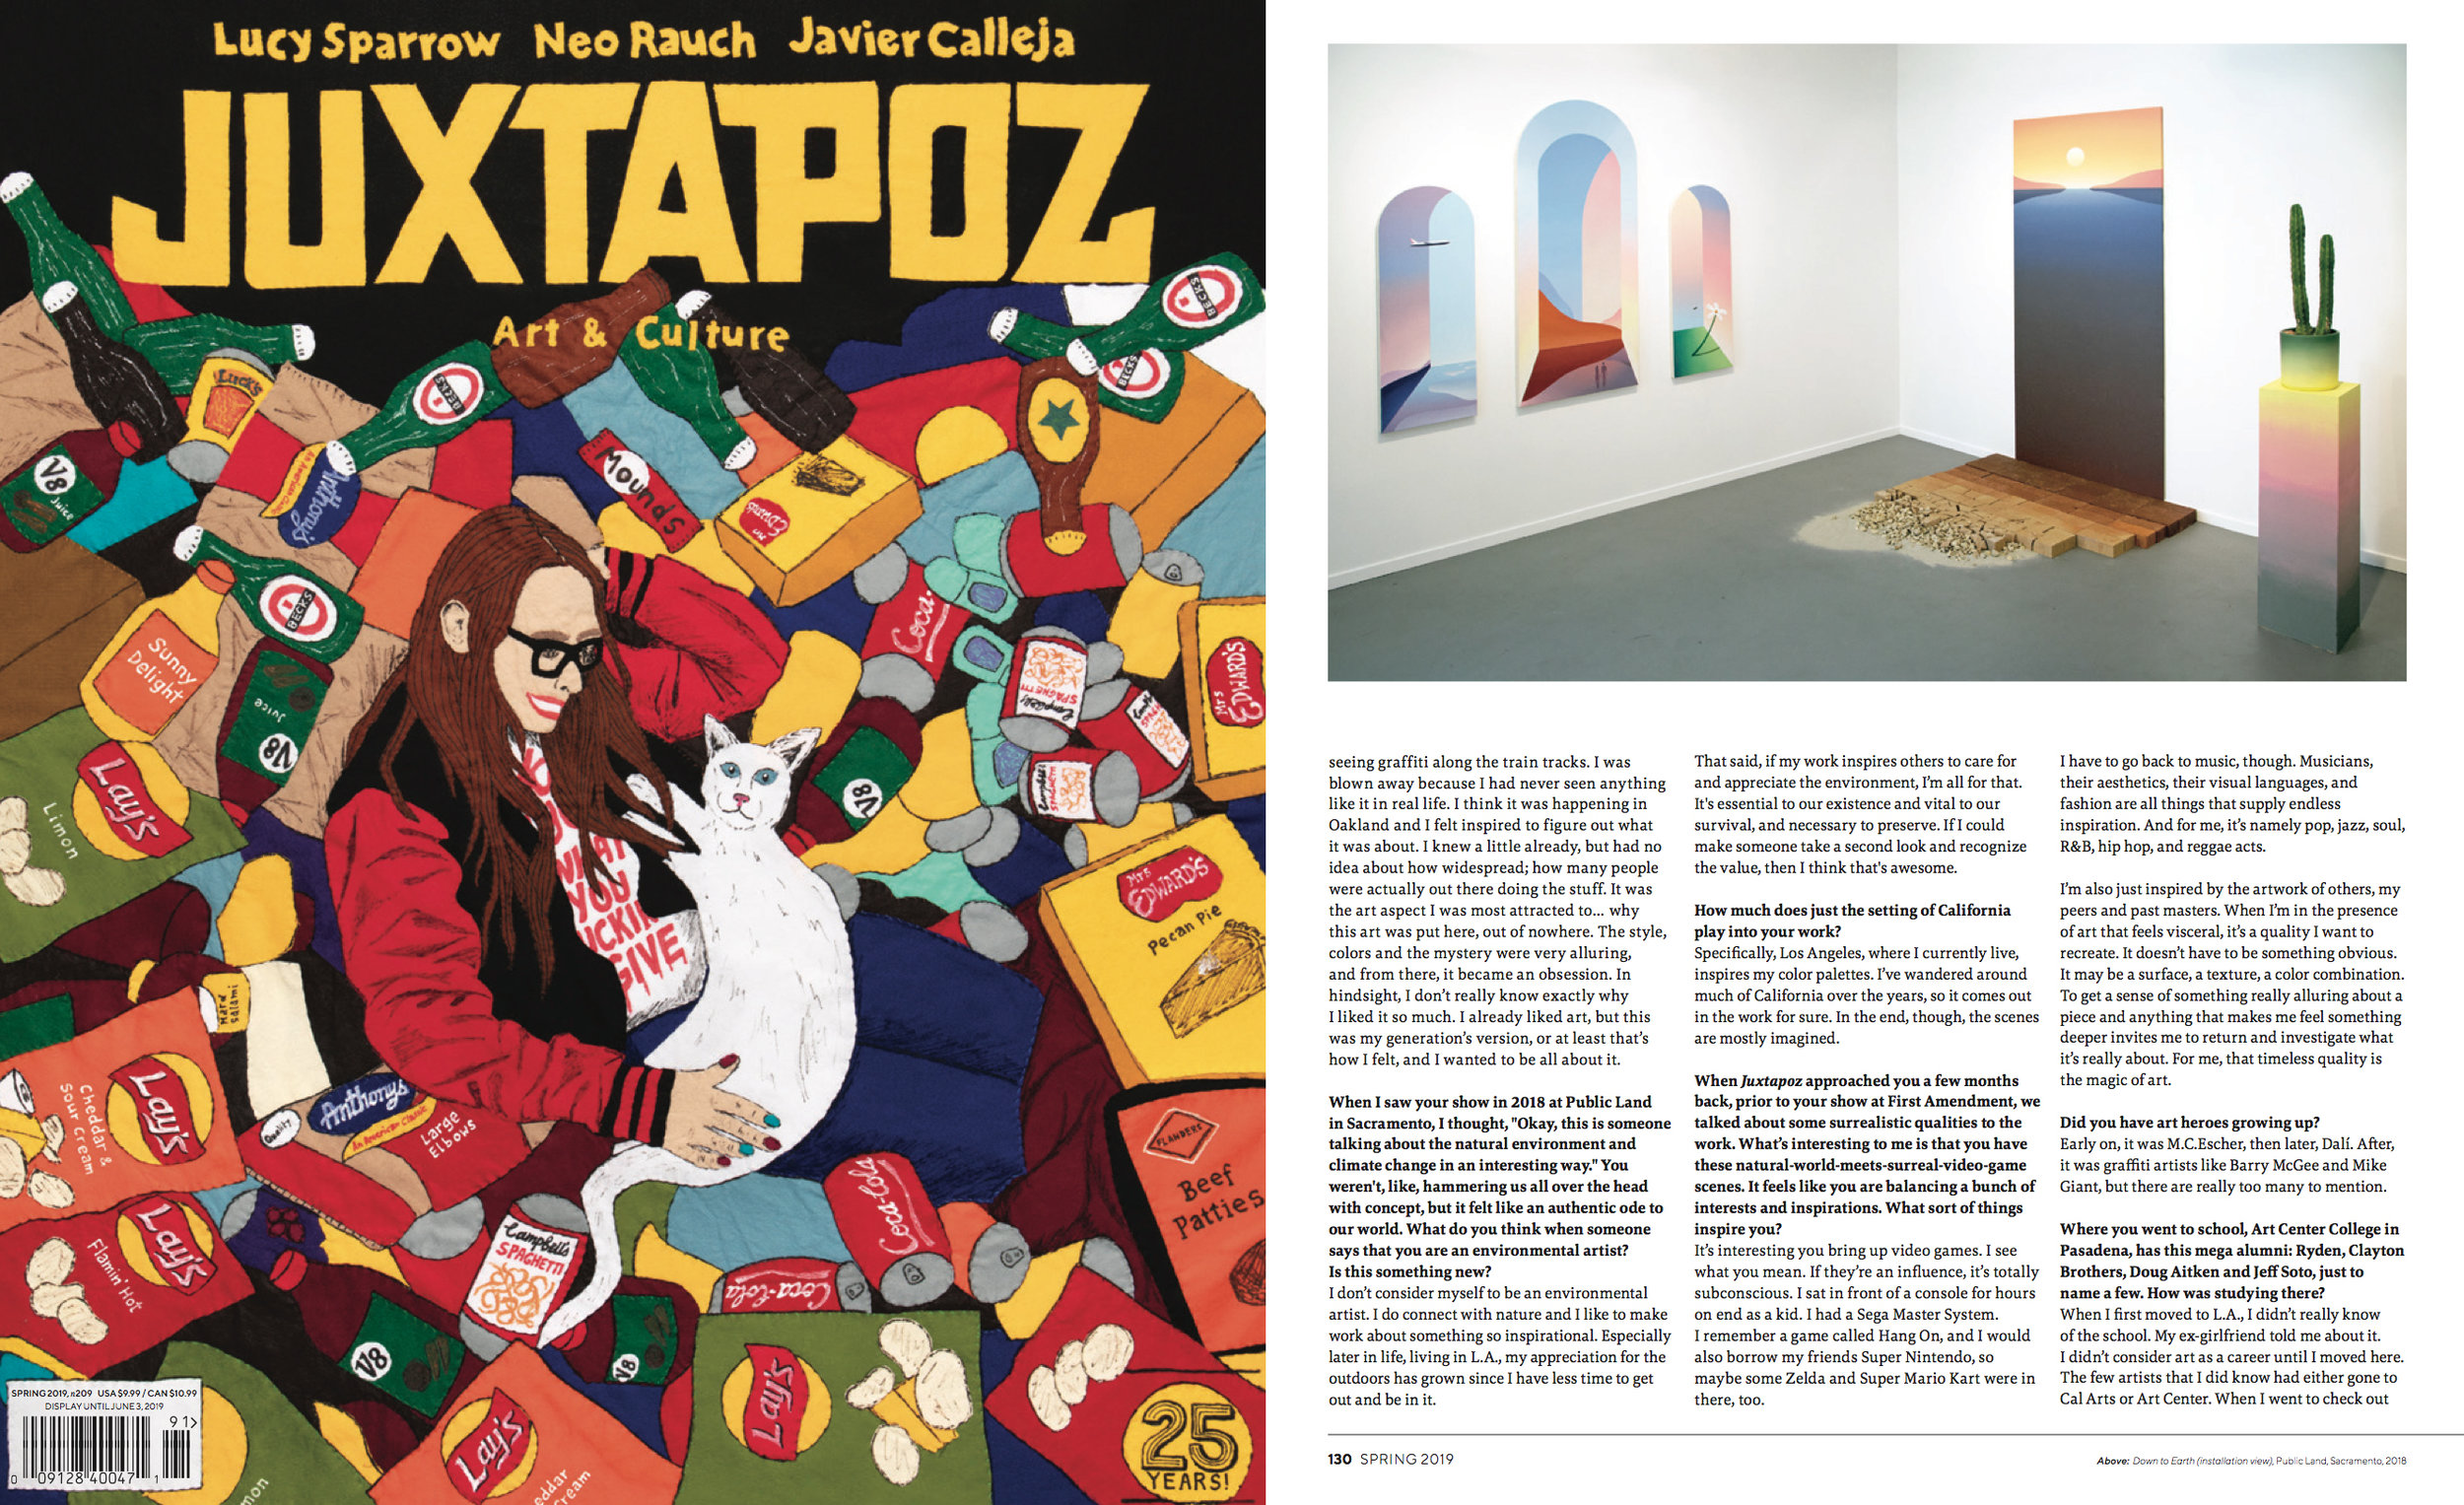 Public Land Store in Sacramento featured in Spring 2019 issue of Juxtapoz Magazine.